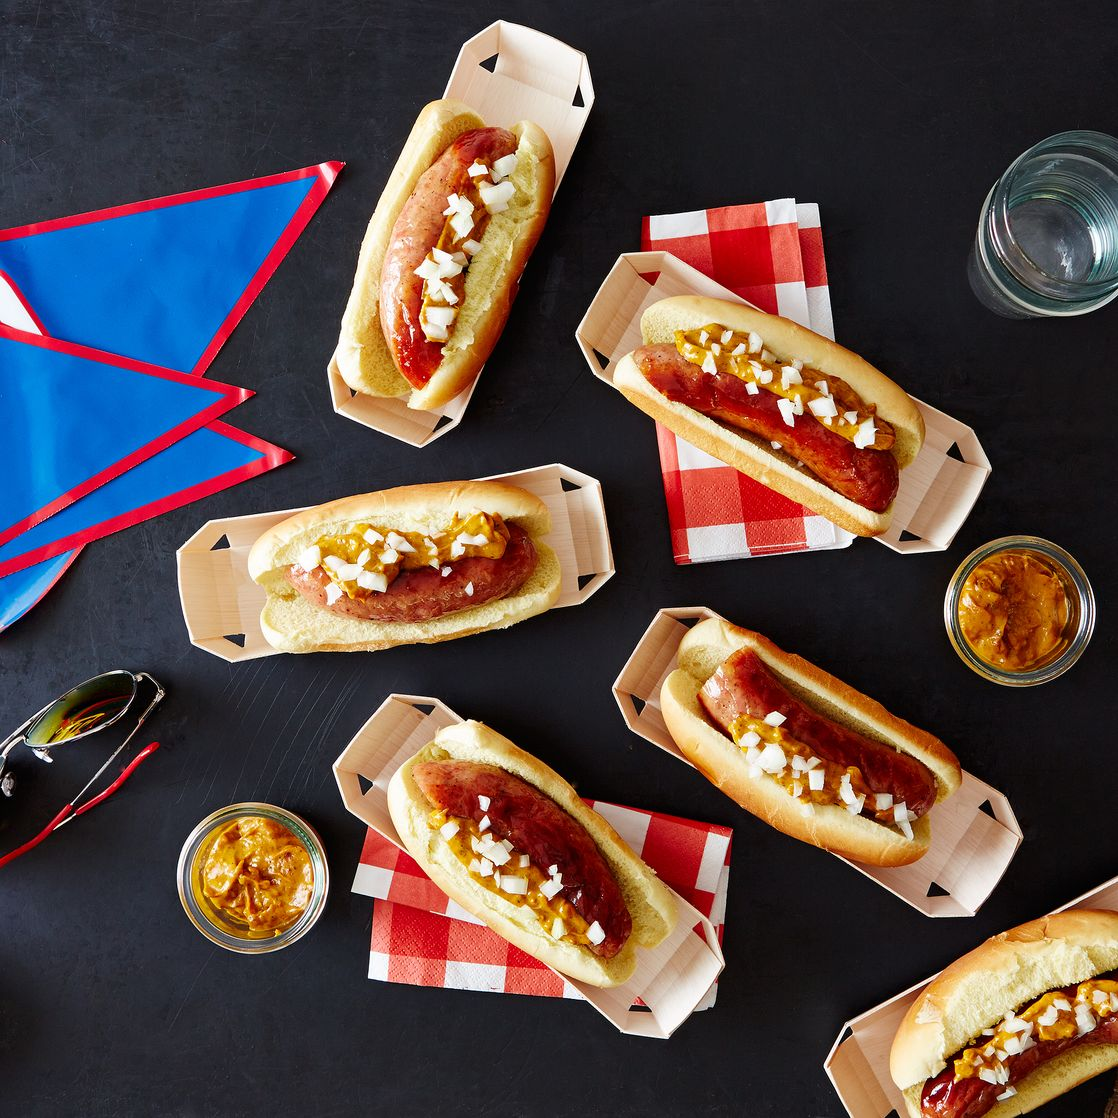 Eco-Friendly Hot Dog Plates